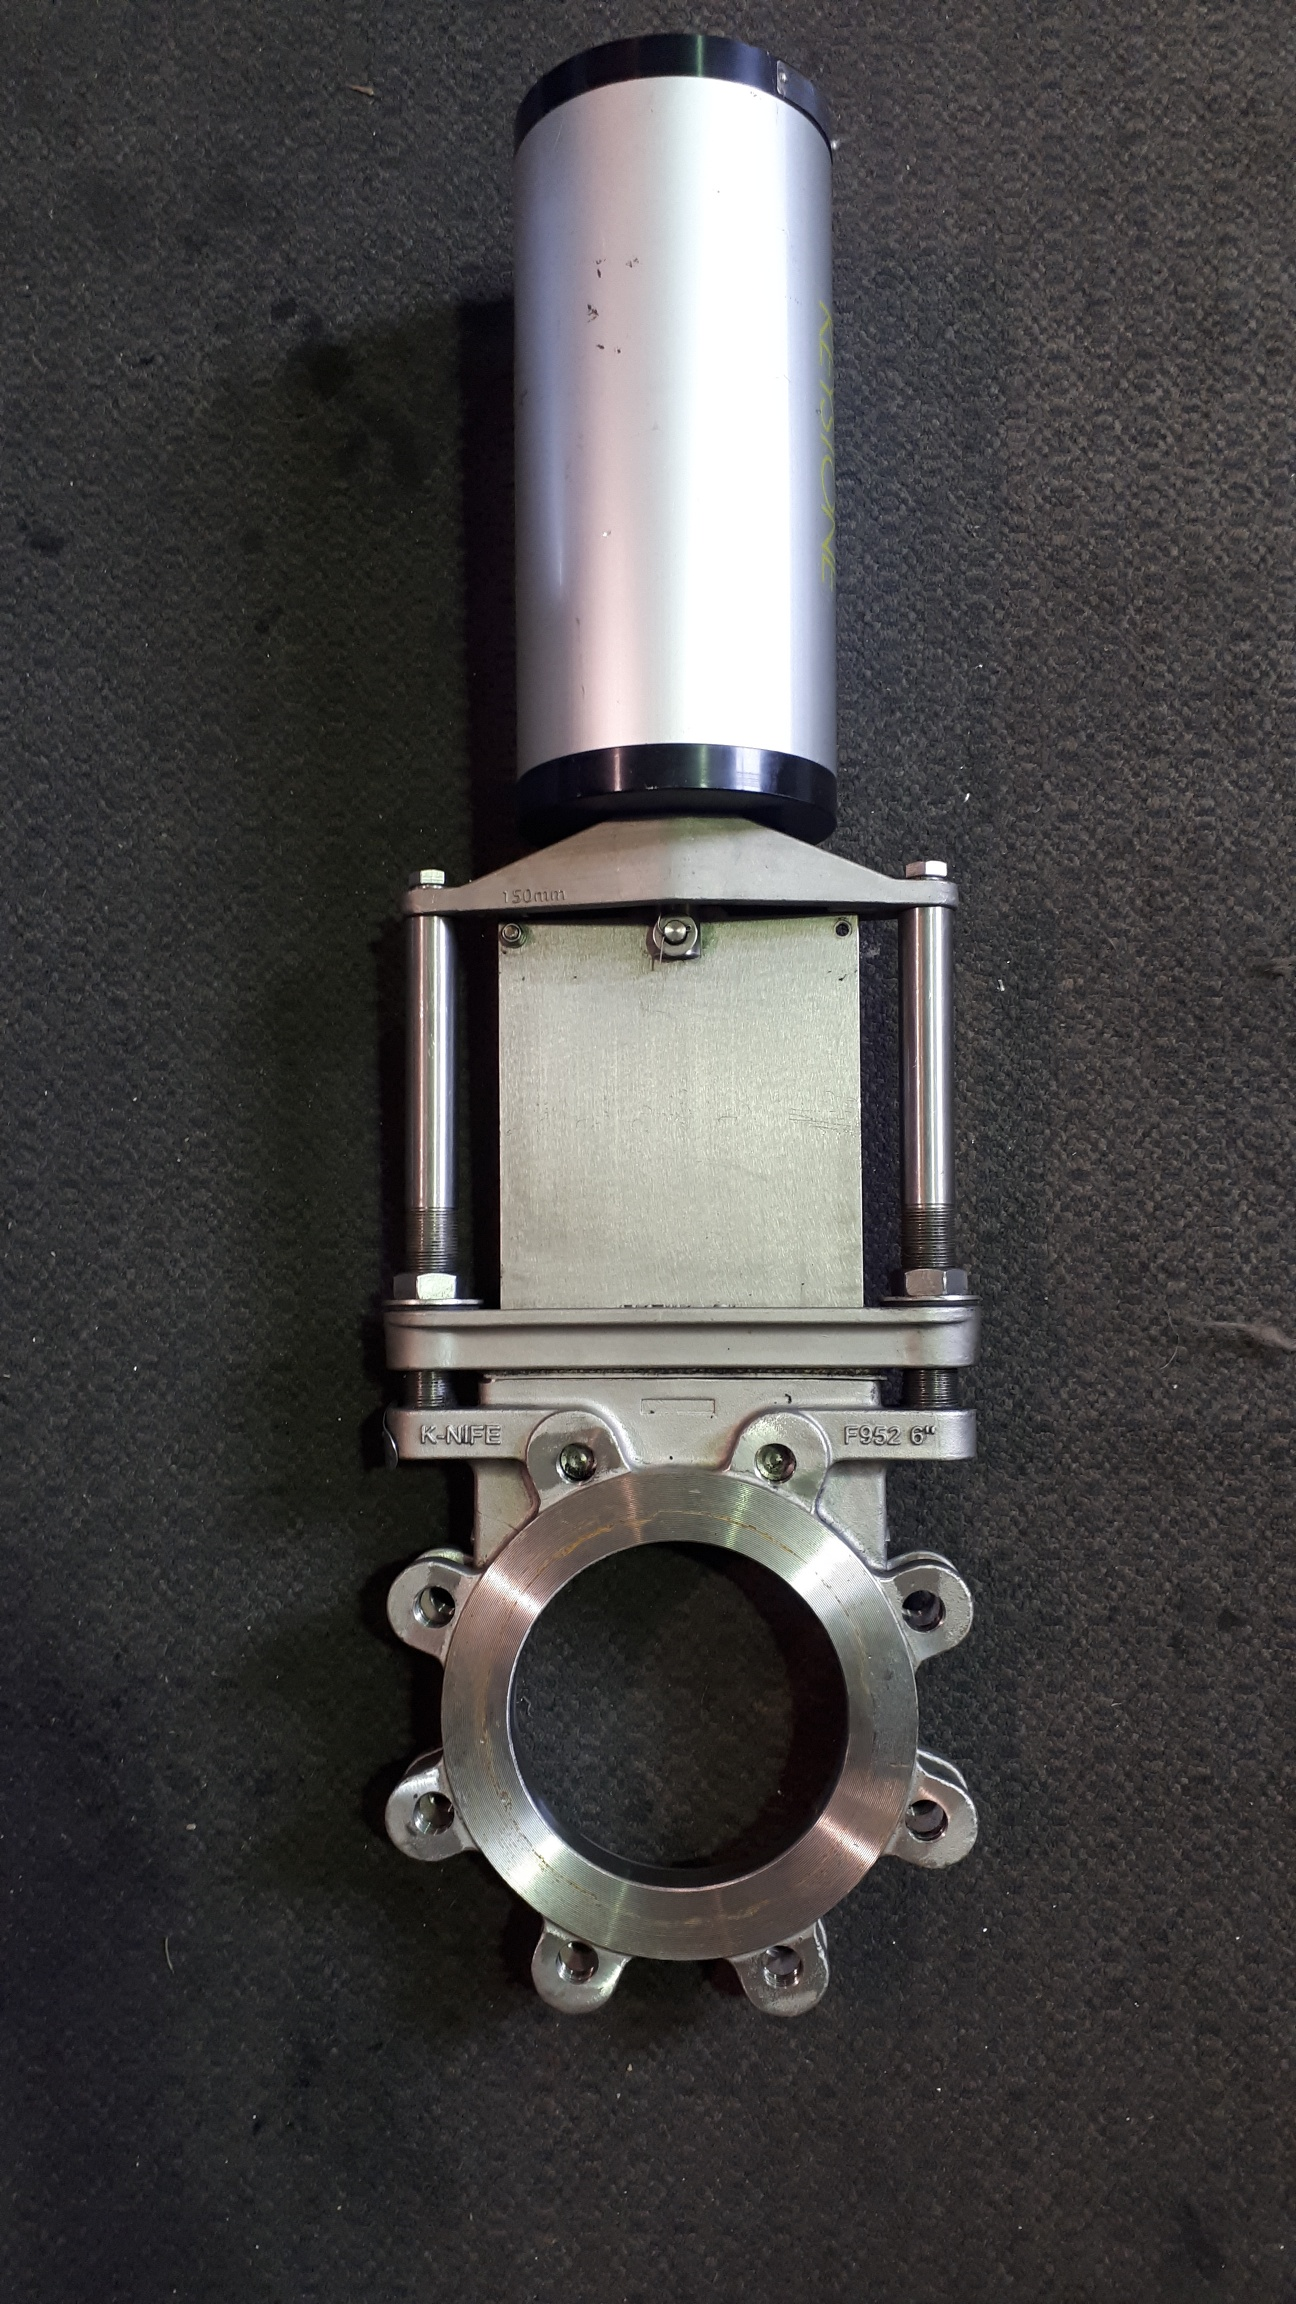 Knife Valves